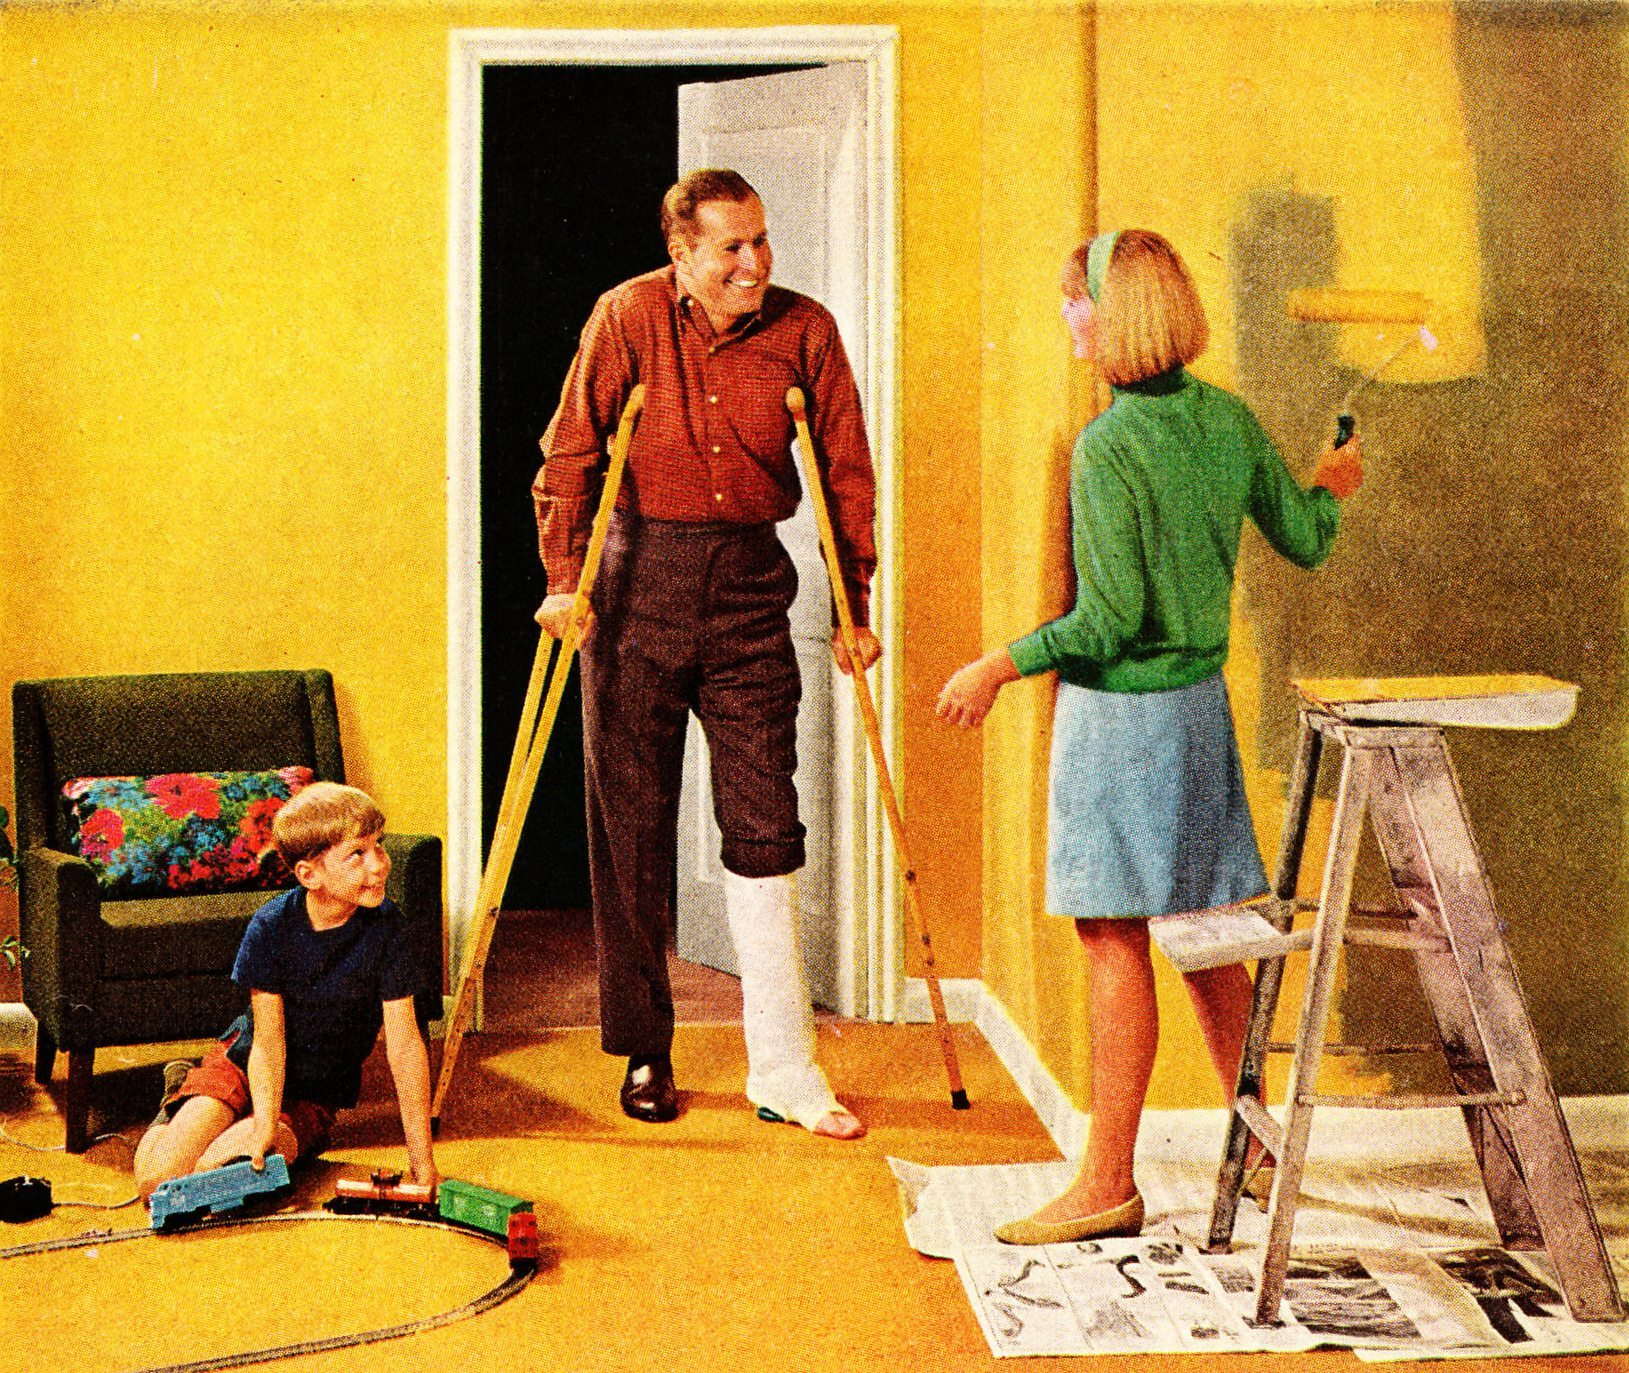 The 1970s vs Today 5 Big Changes in The American Home  Flashbak